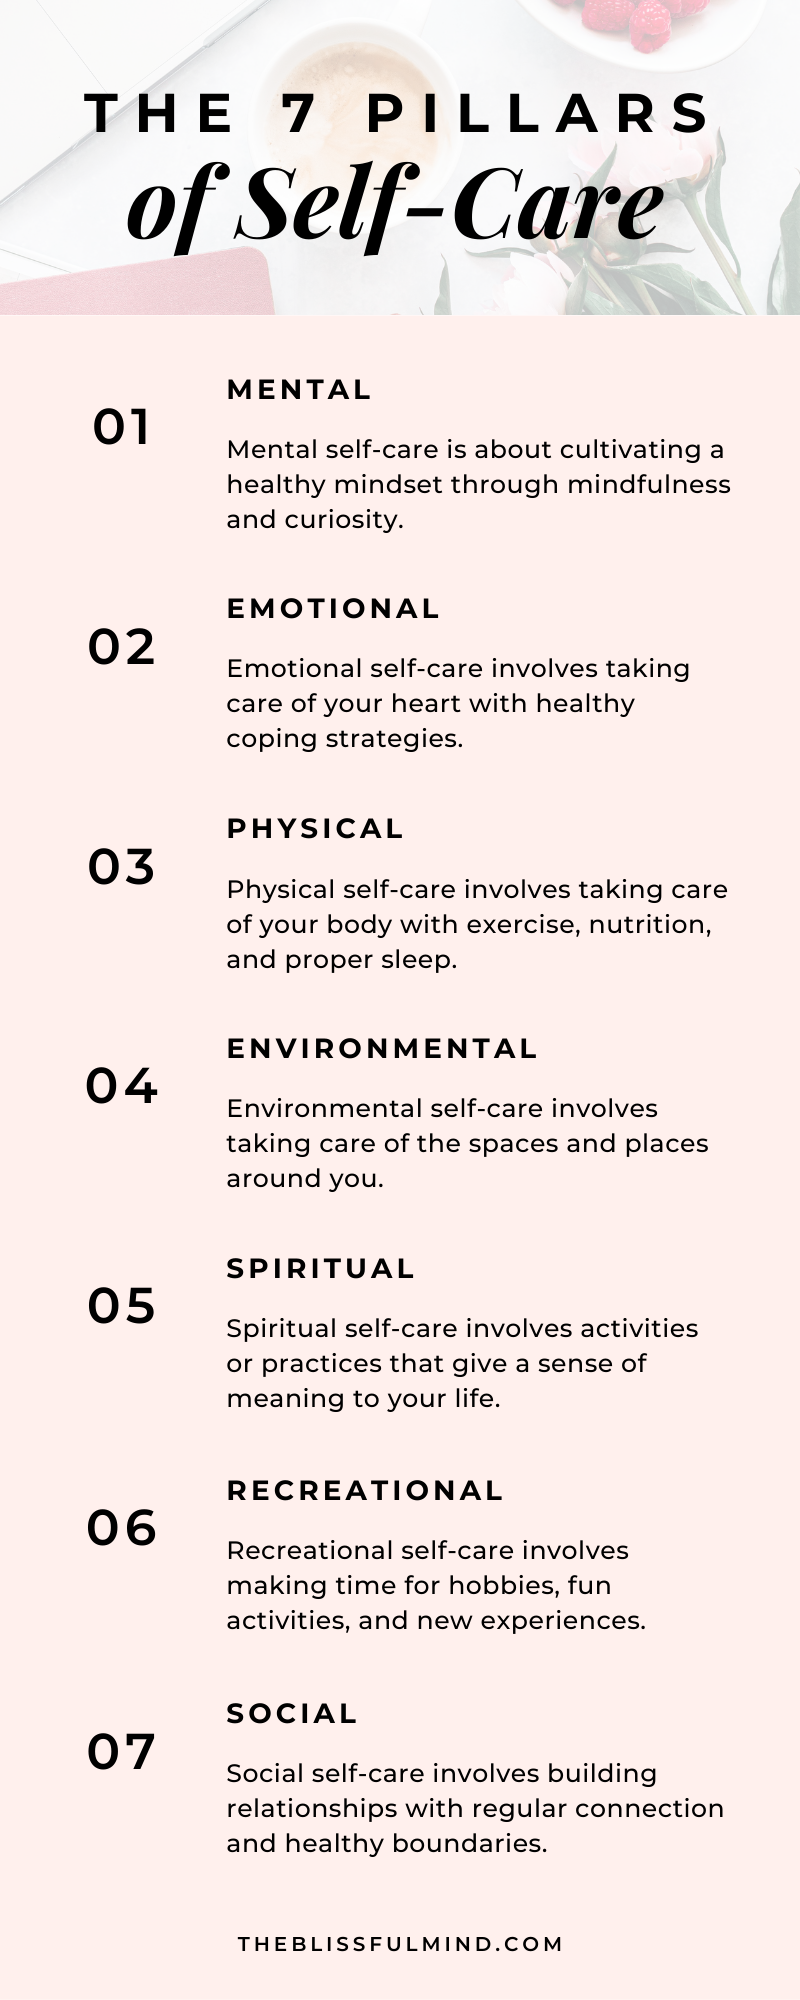 The 7 Pillars of Self-Care and How To Use Them